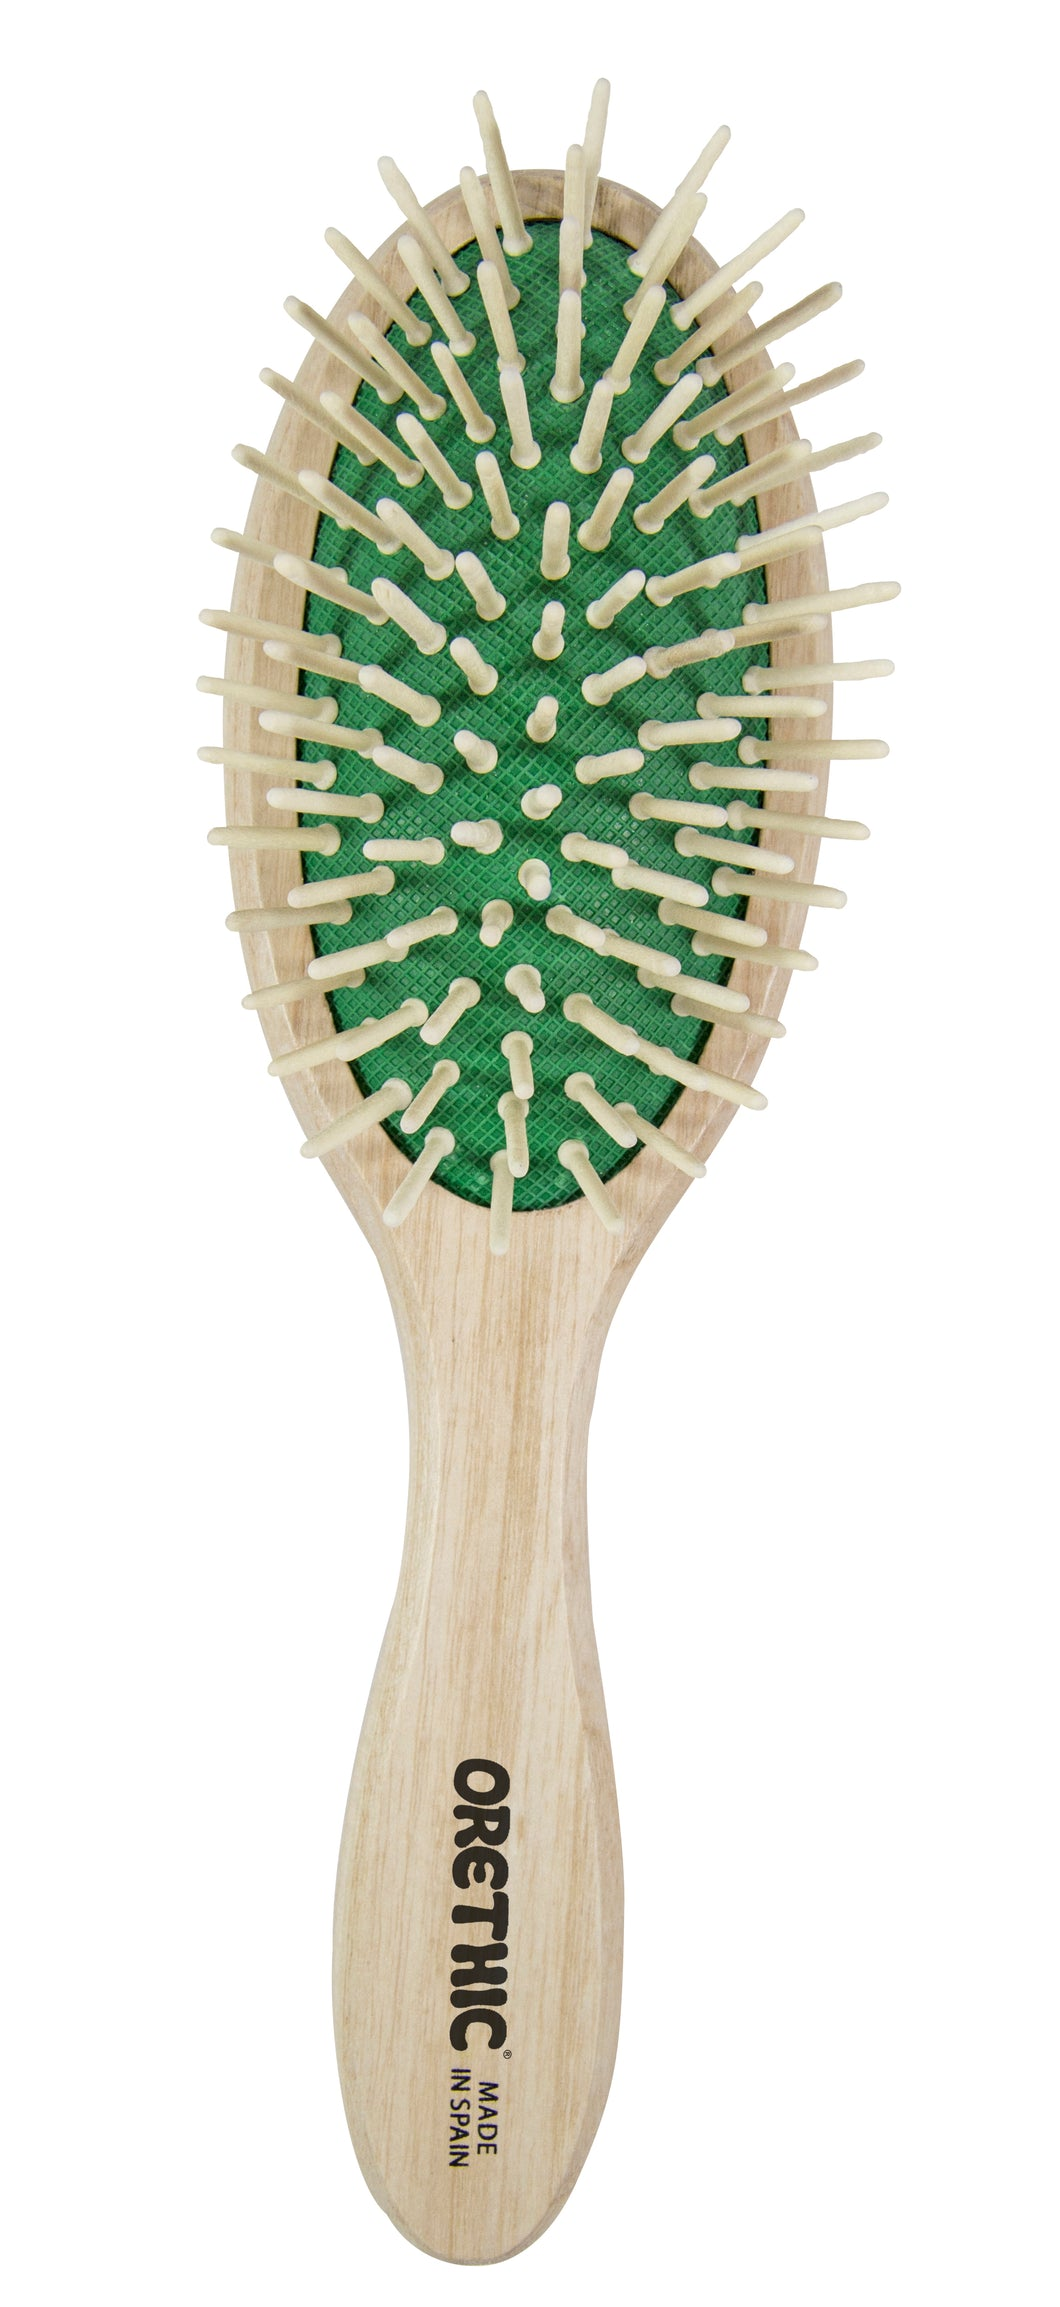 Hairbrush Wooden: Travel Size